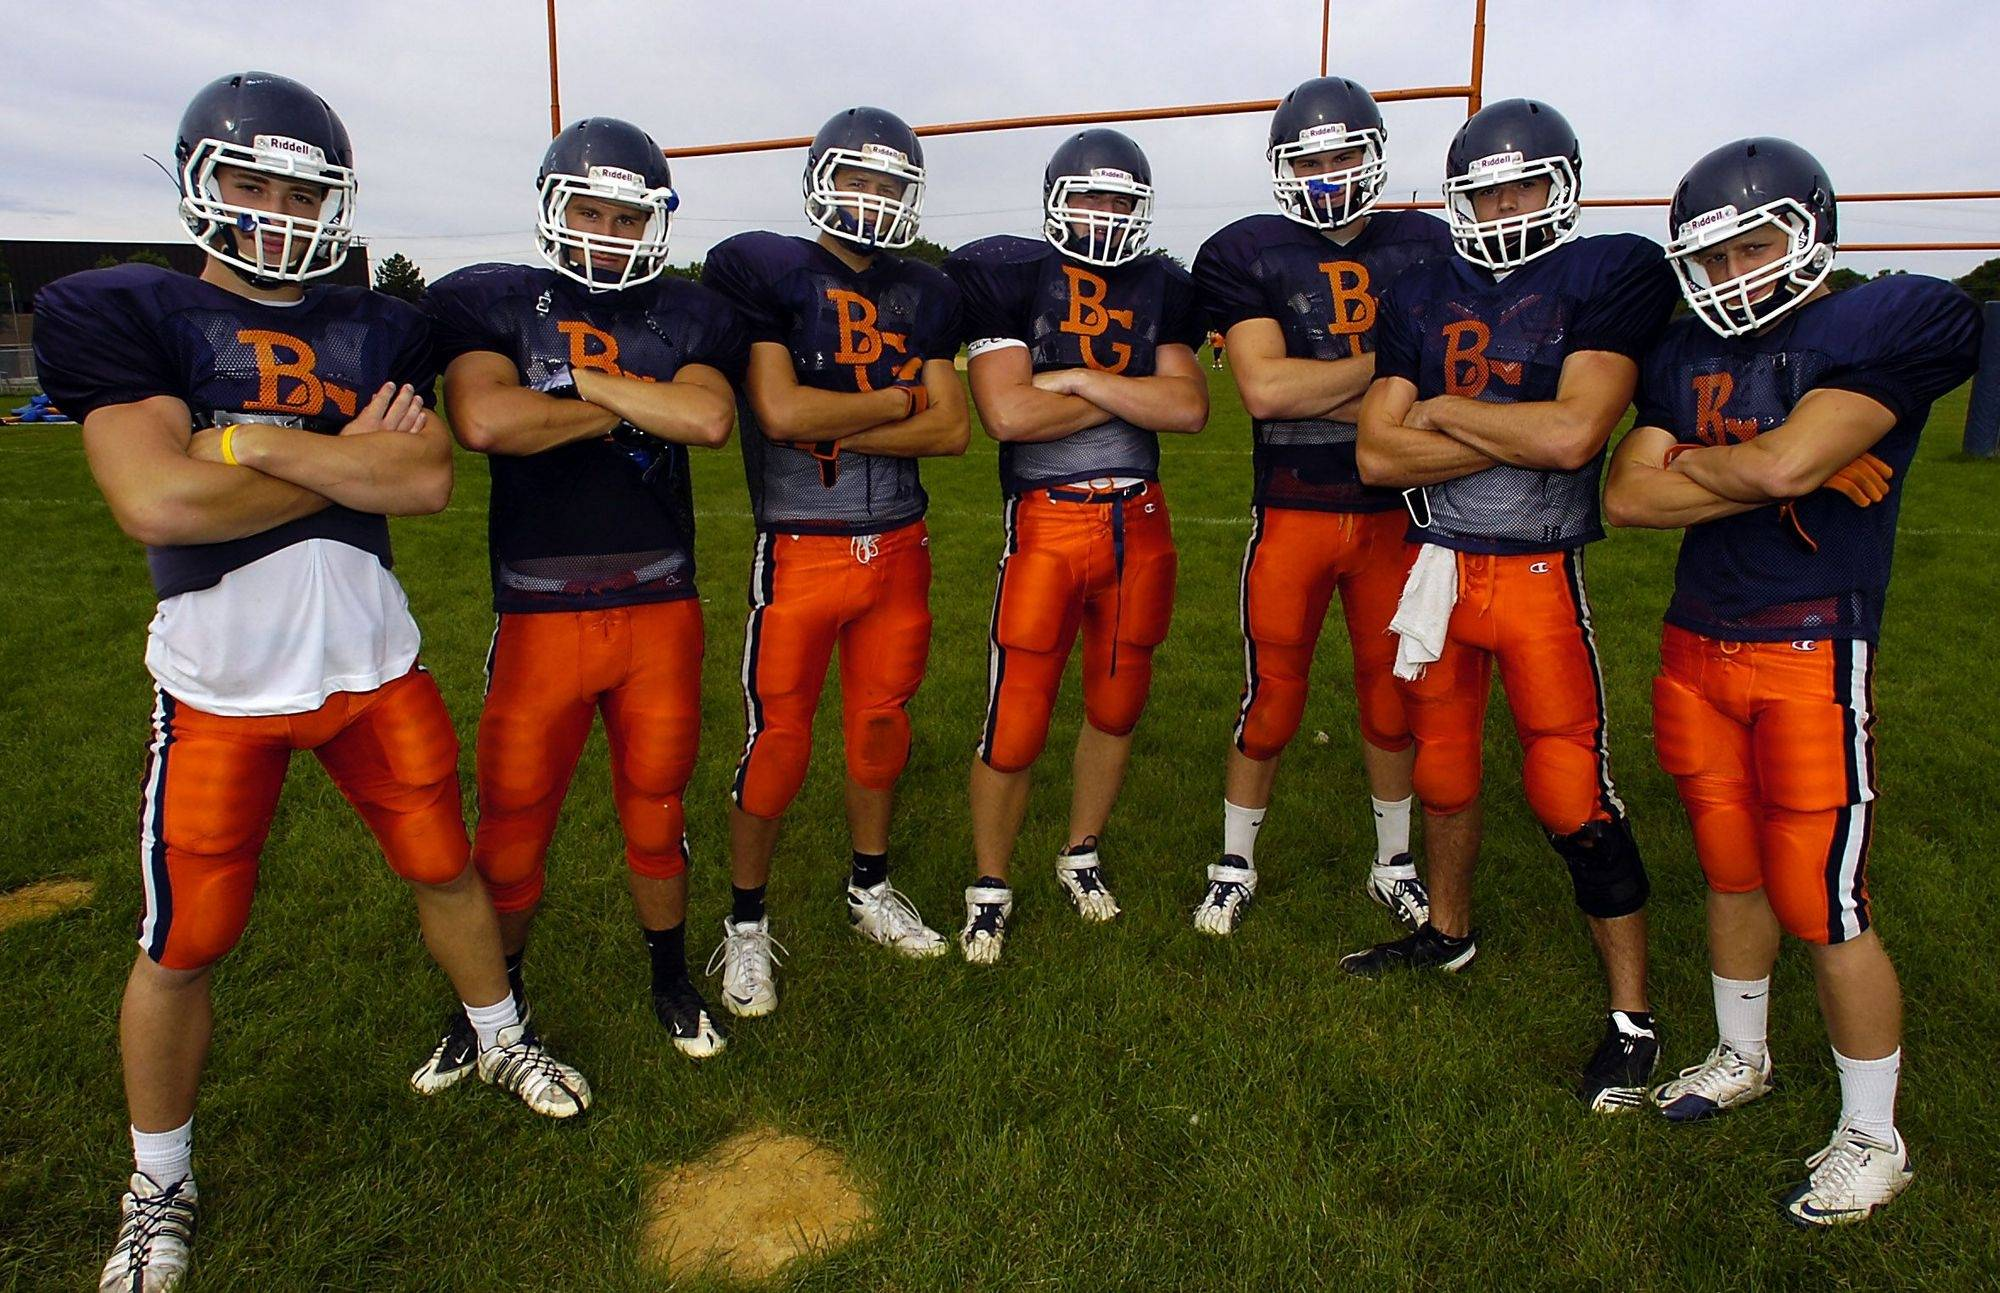 The Buffalo Grove barricade, quarterback Mike Garrity, Tyler Juckett, Dan Recht, Joe Damisch, Jeff Zabrin, Brian Akialis and Jeff Tennenbaum.